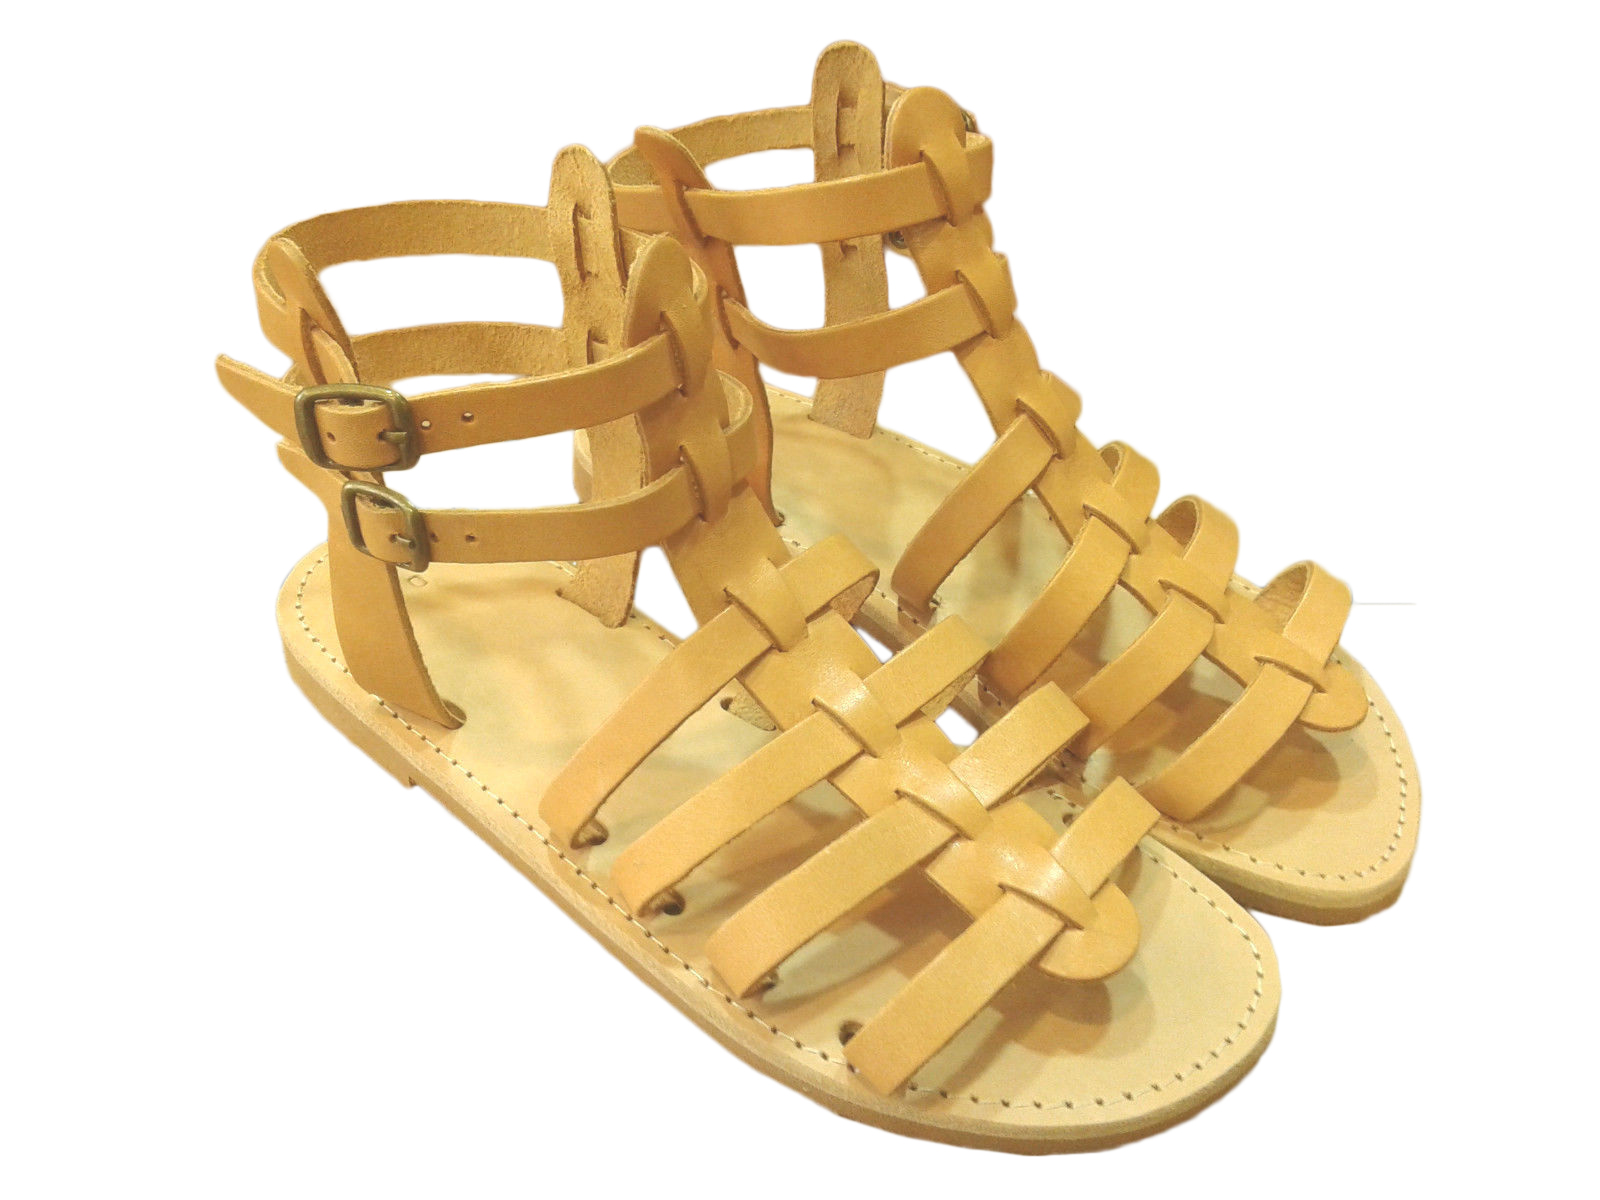 4ae2c226a0233 Medusa - Gladiator Greek Handmade Sandals, Classic Ancient Style